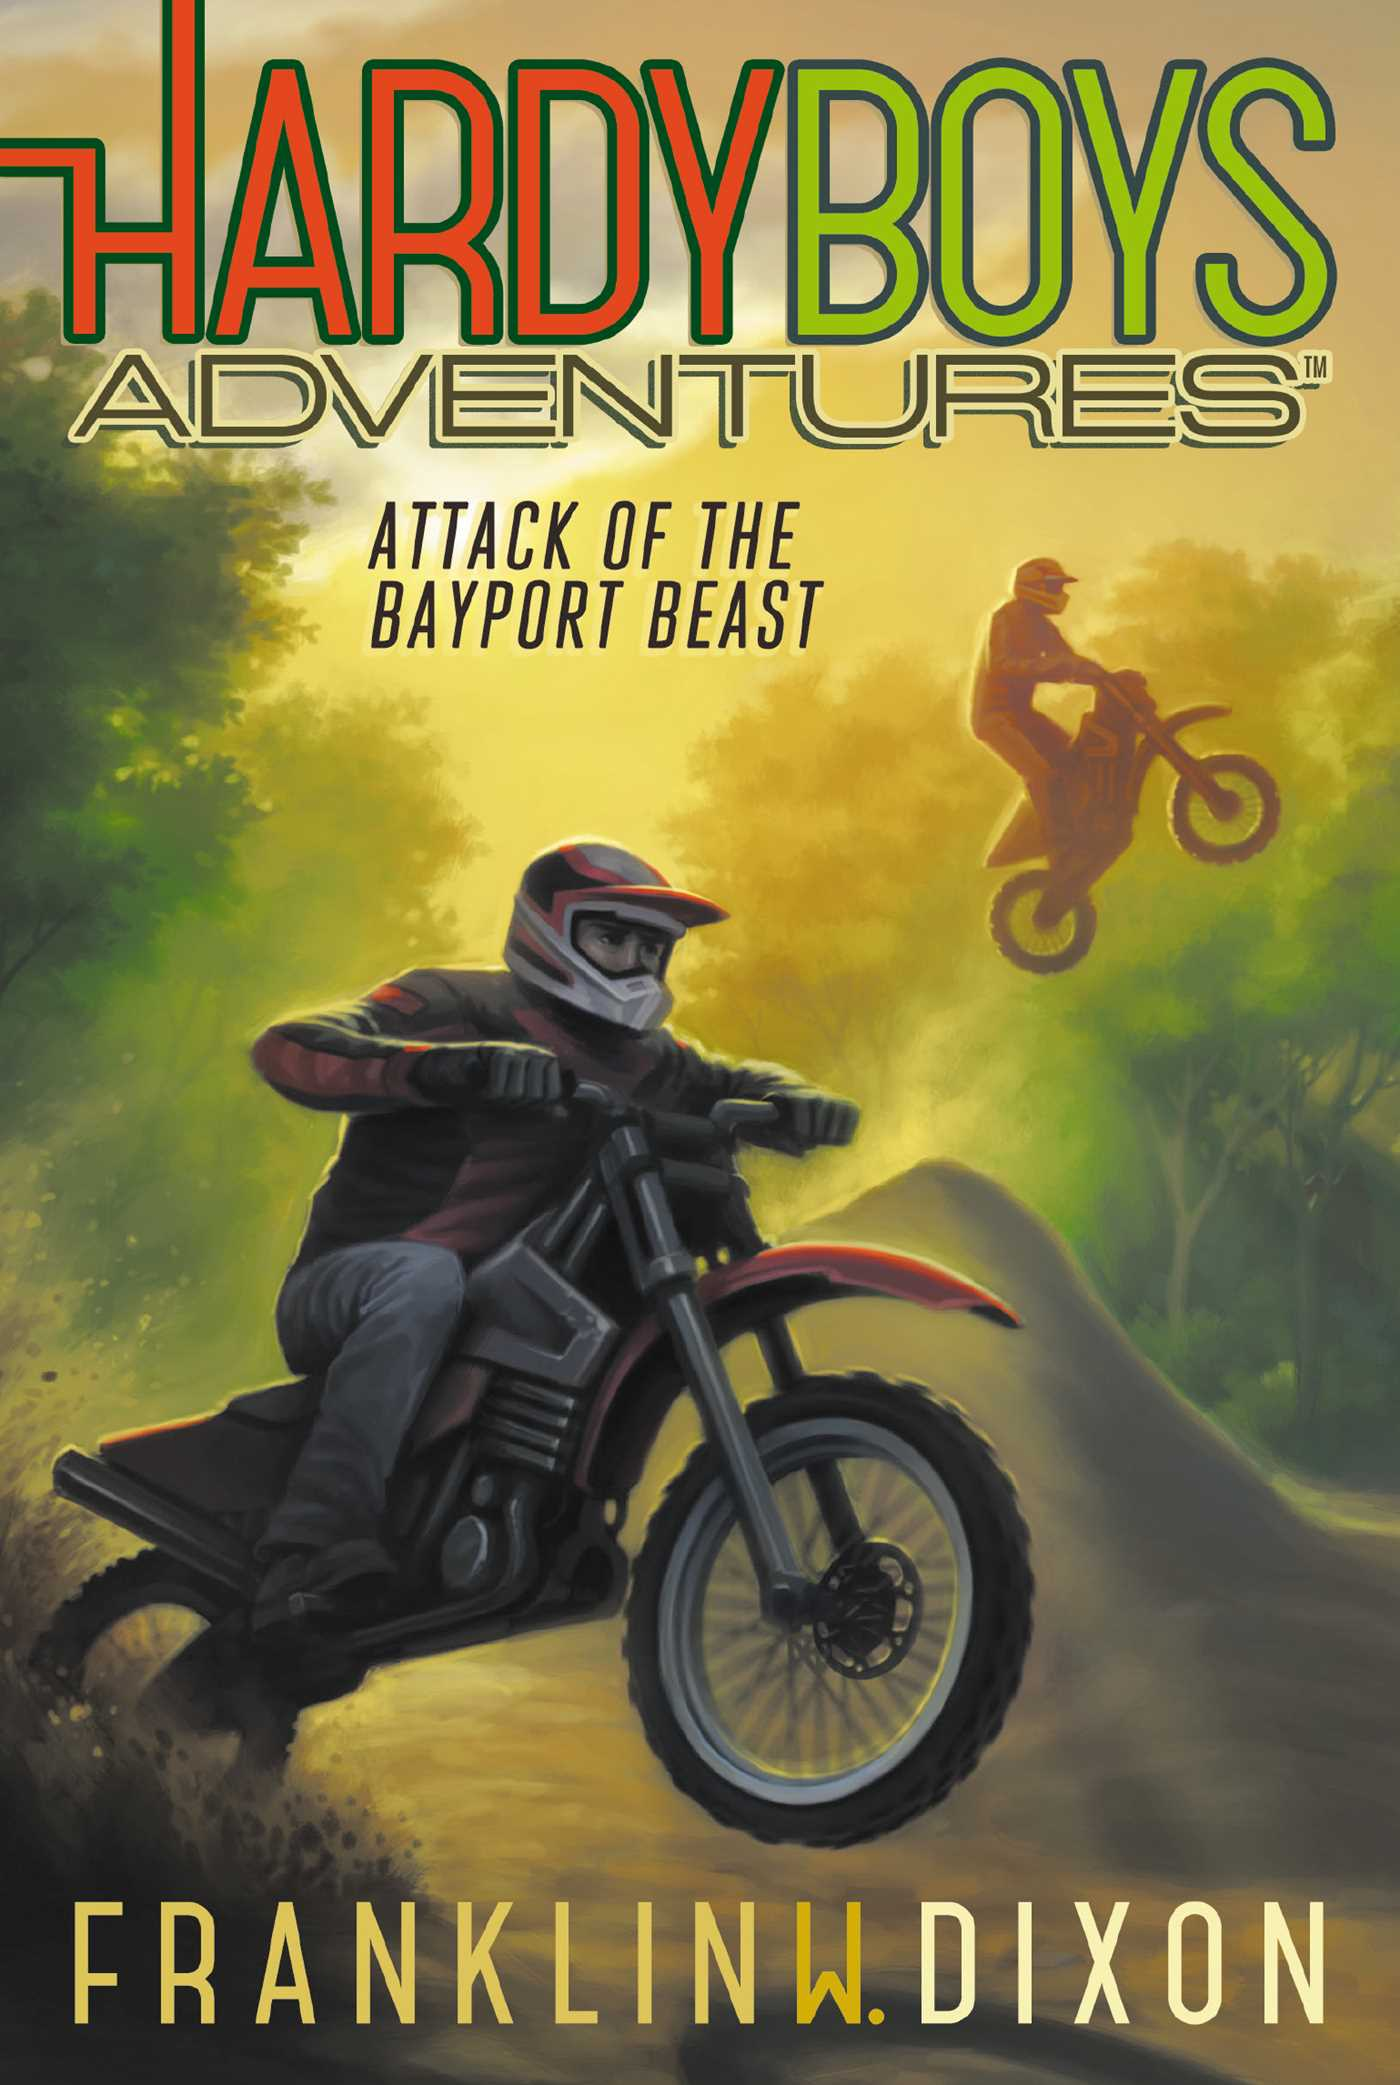 Poll ~ Hardy Boys Adventures #14 Attack of the Bayport Beast